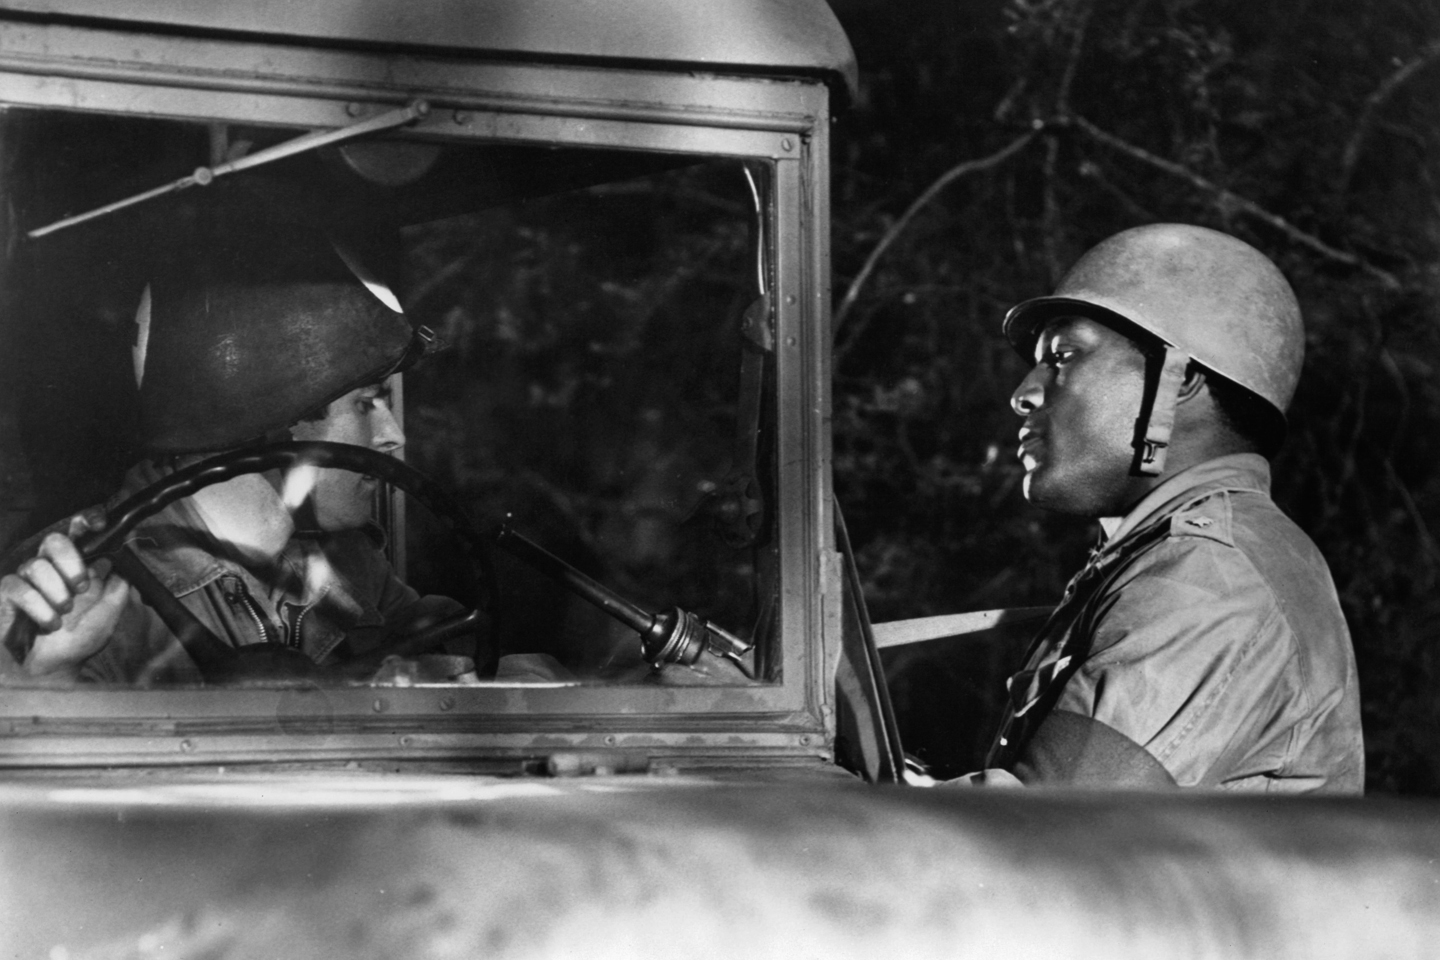 Jim Brown holds up an ambulance driver in a scene from the film 'The Dirty Dozen', 1967.